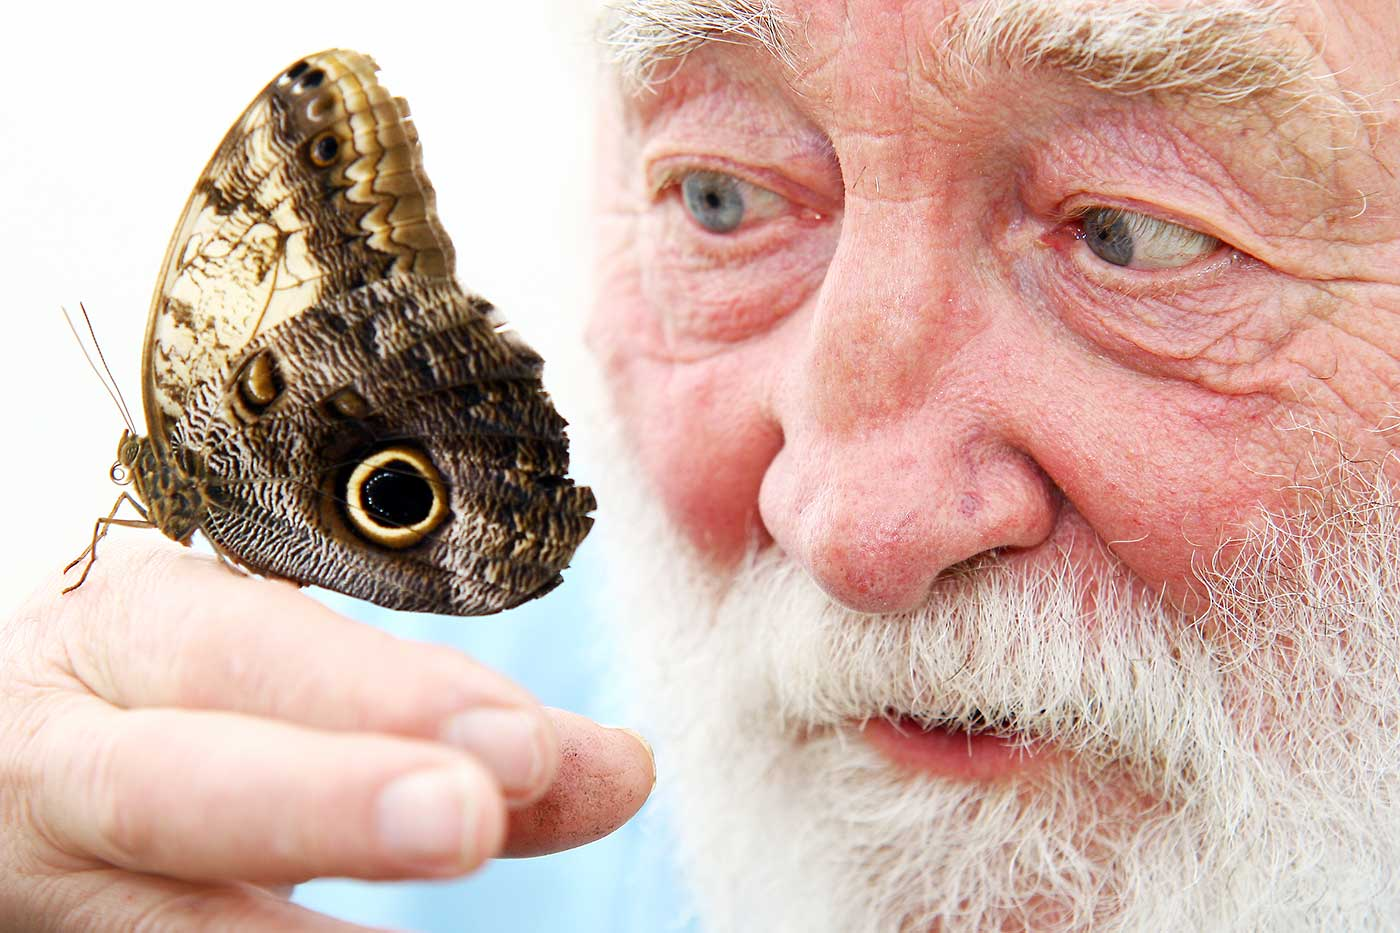 David-Bellamy-at-Butterfly-World.jpg